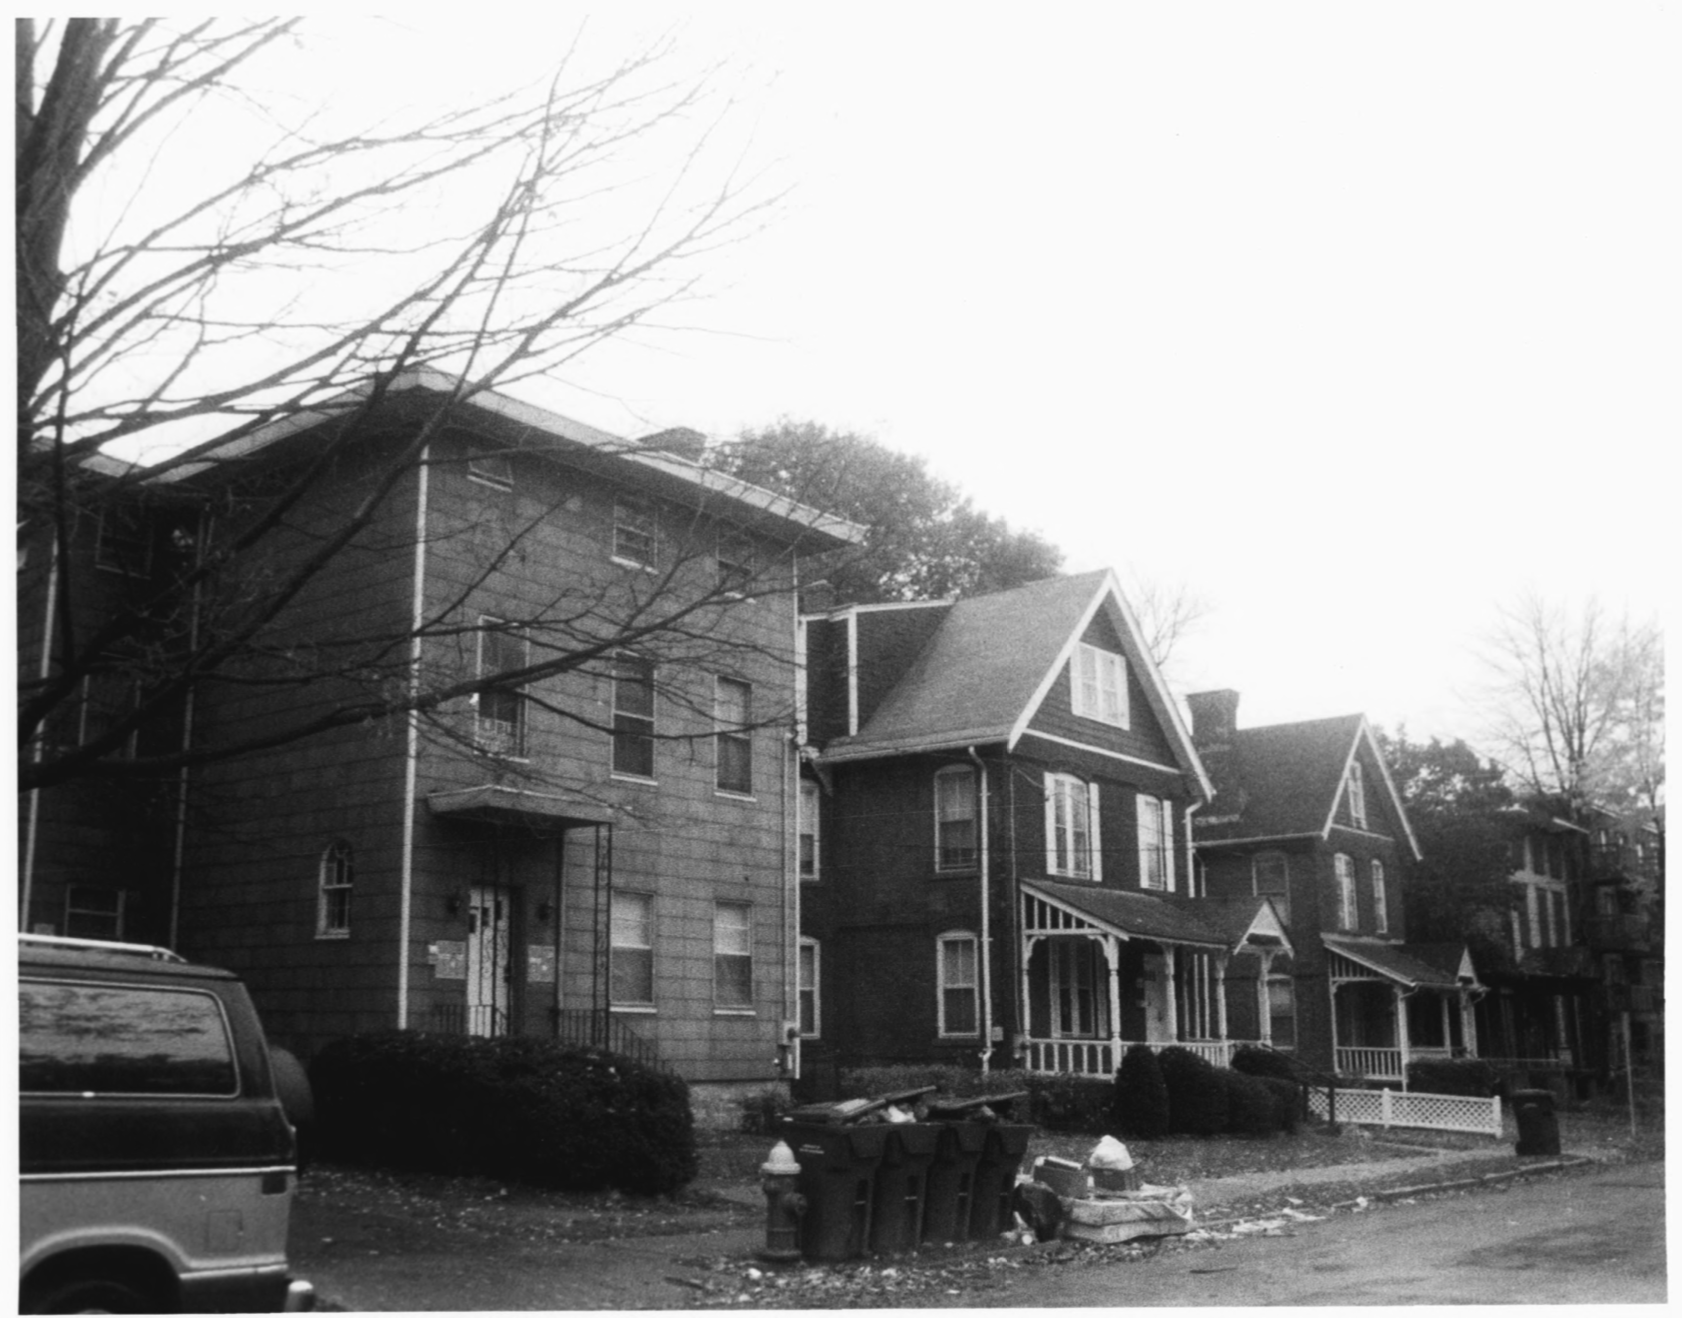 Allen Place - Lincoln Street Historic District Photo Record, Maintained by the NPS, Photo 7